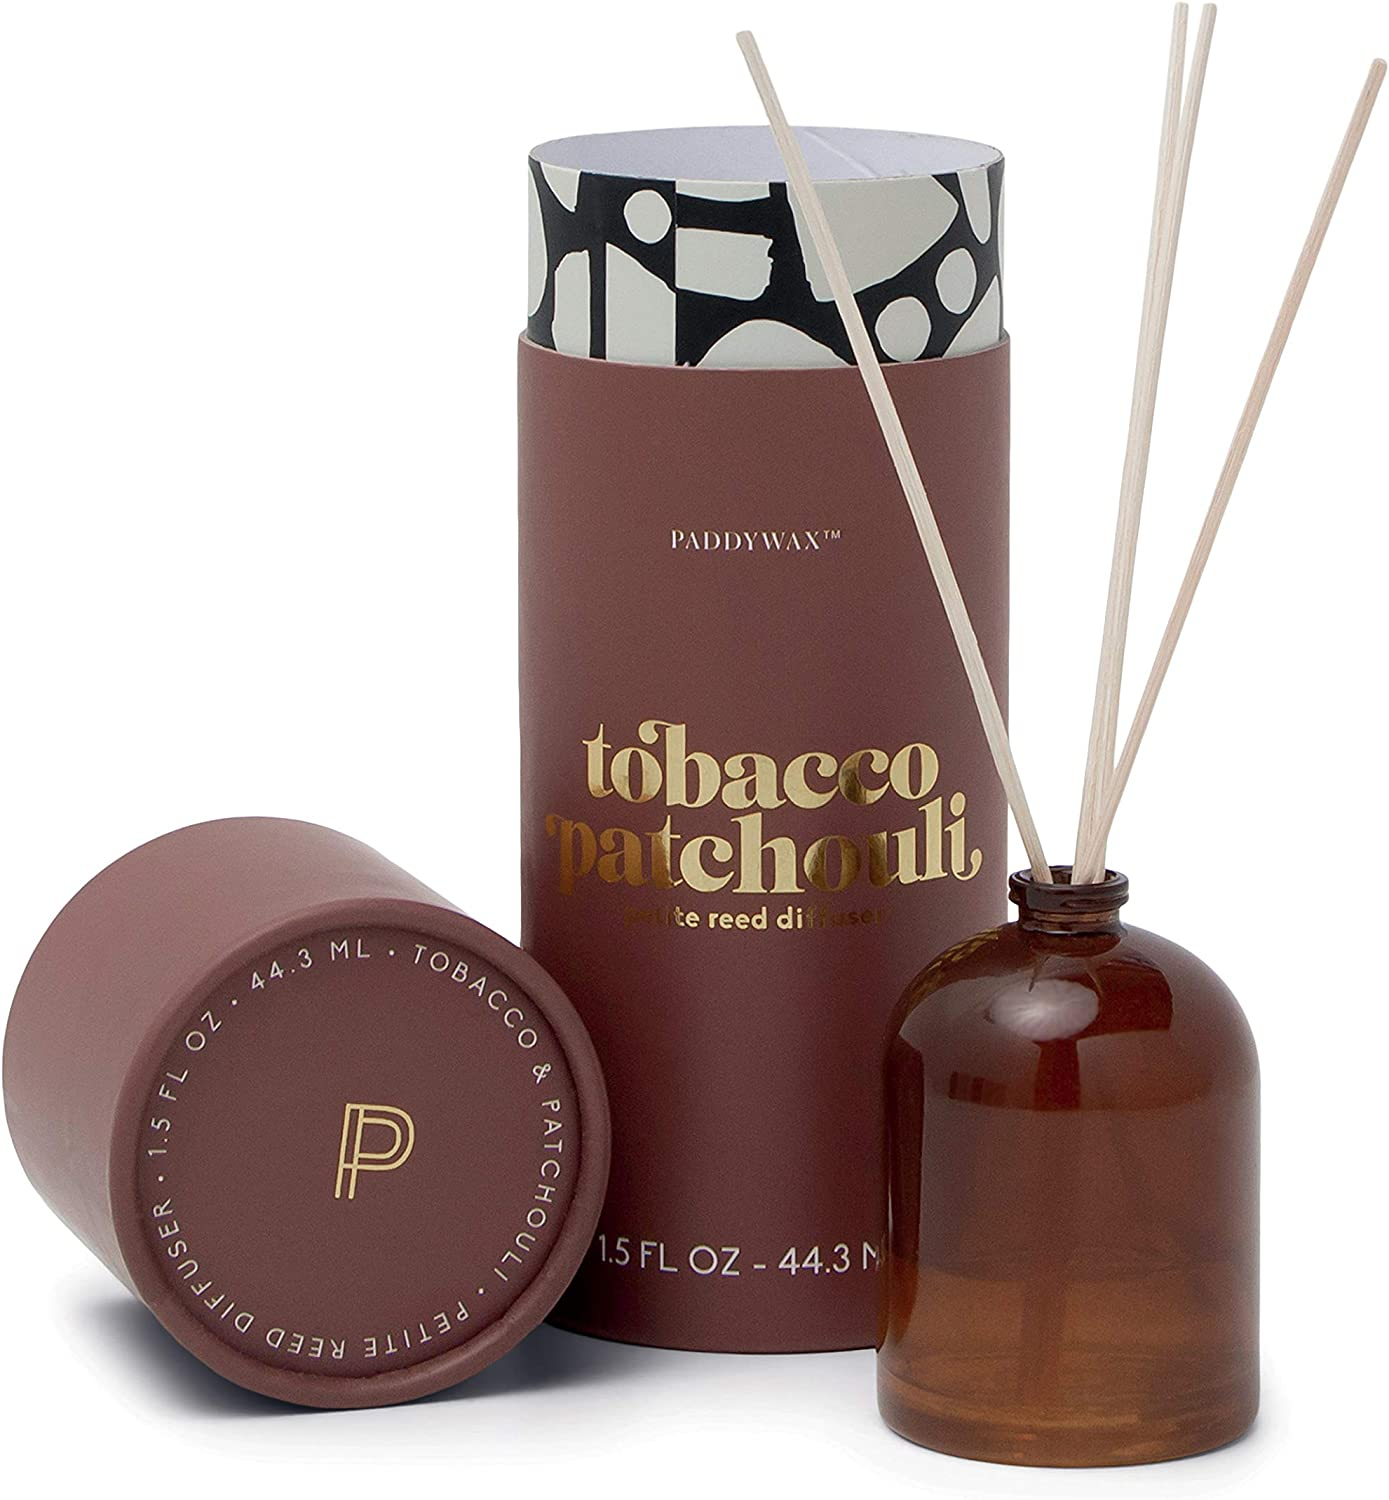 Paddywax Candles Petite Collection Reed Diffuser, 1.5-Ounce, Brown-Tobacco Patchouli